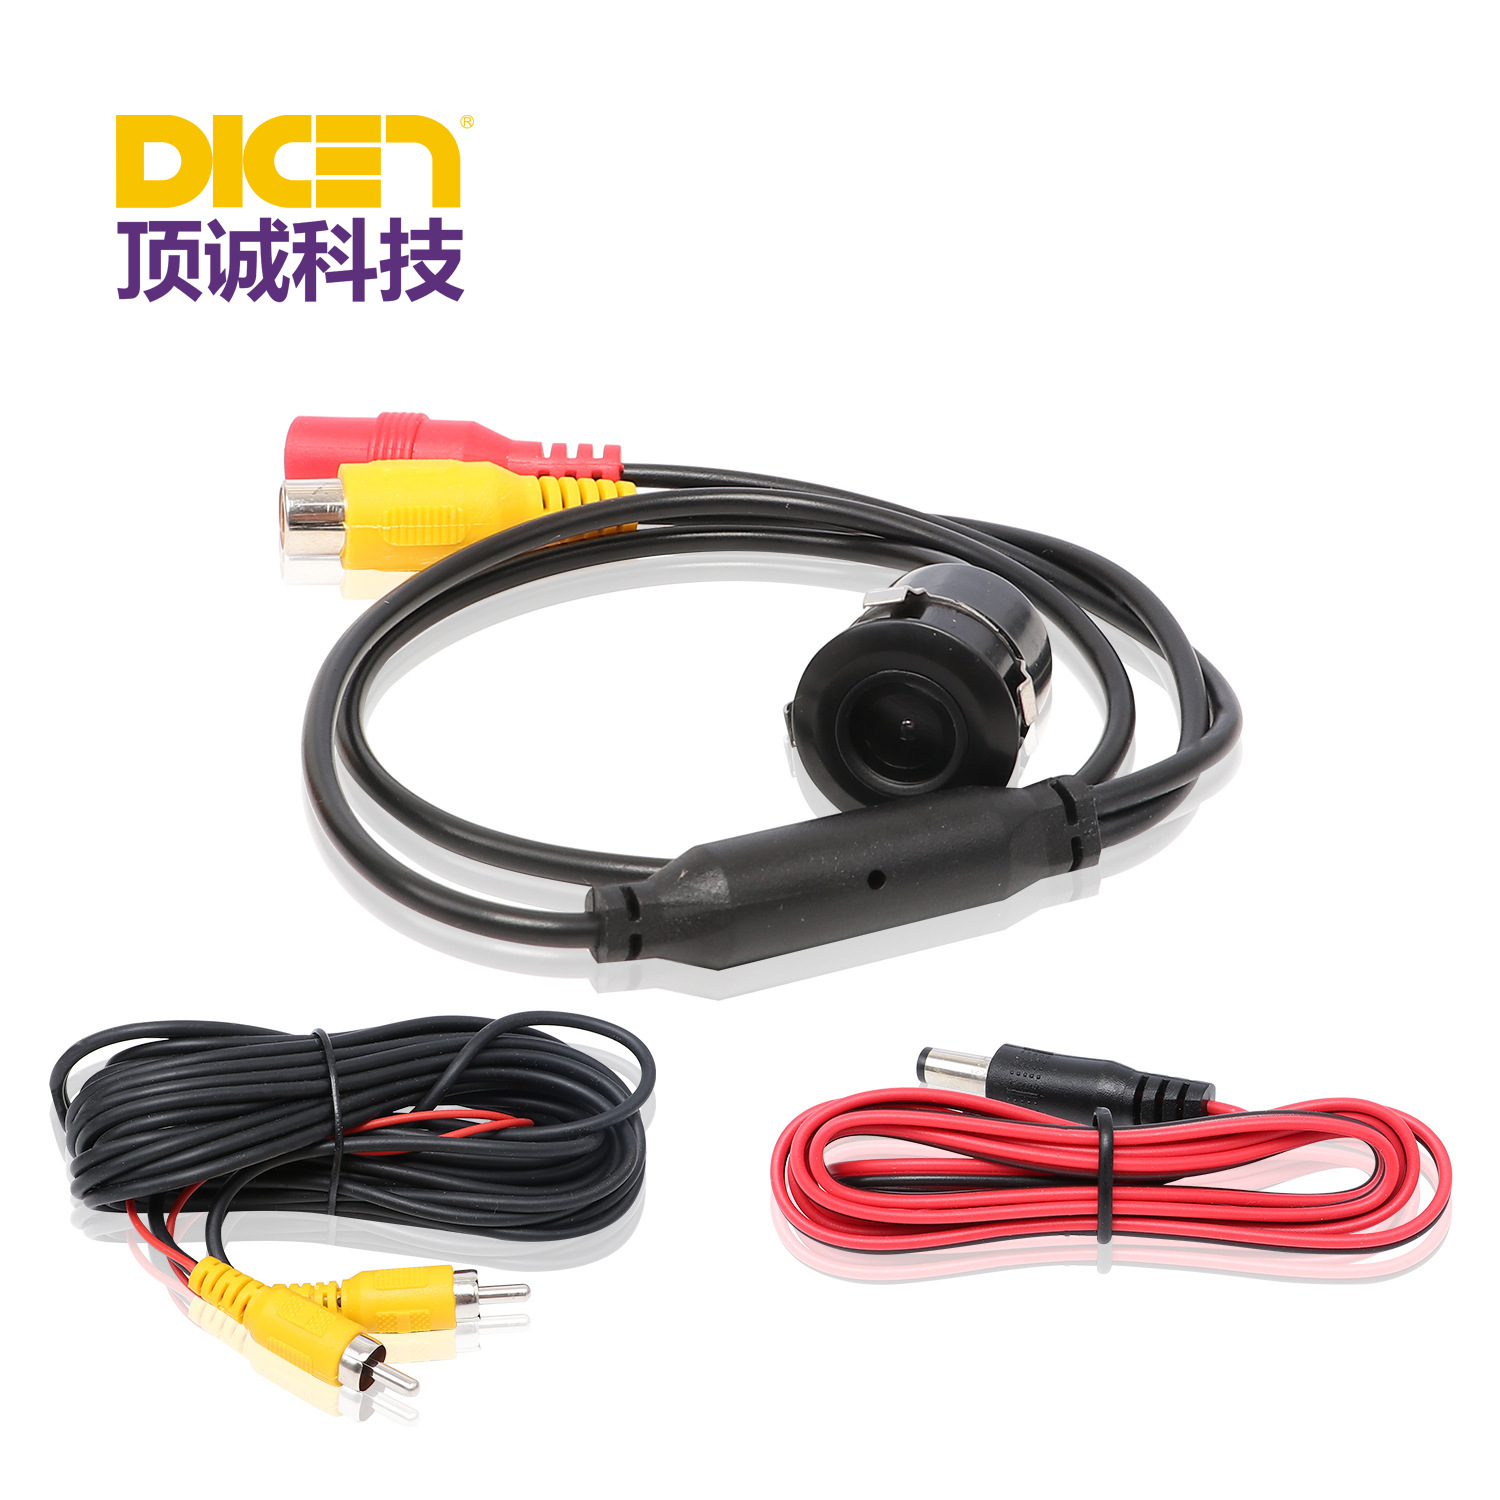 Car Infrared High-definition Camera Reversing Video Night Vision Rear View Universal Waterproof Outside China Warehouse Distribu